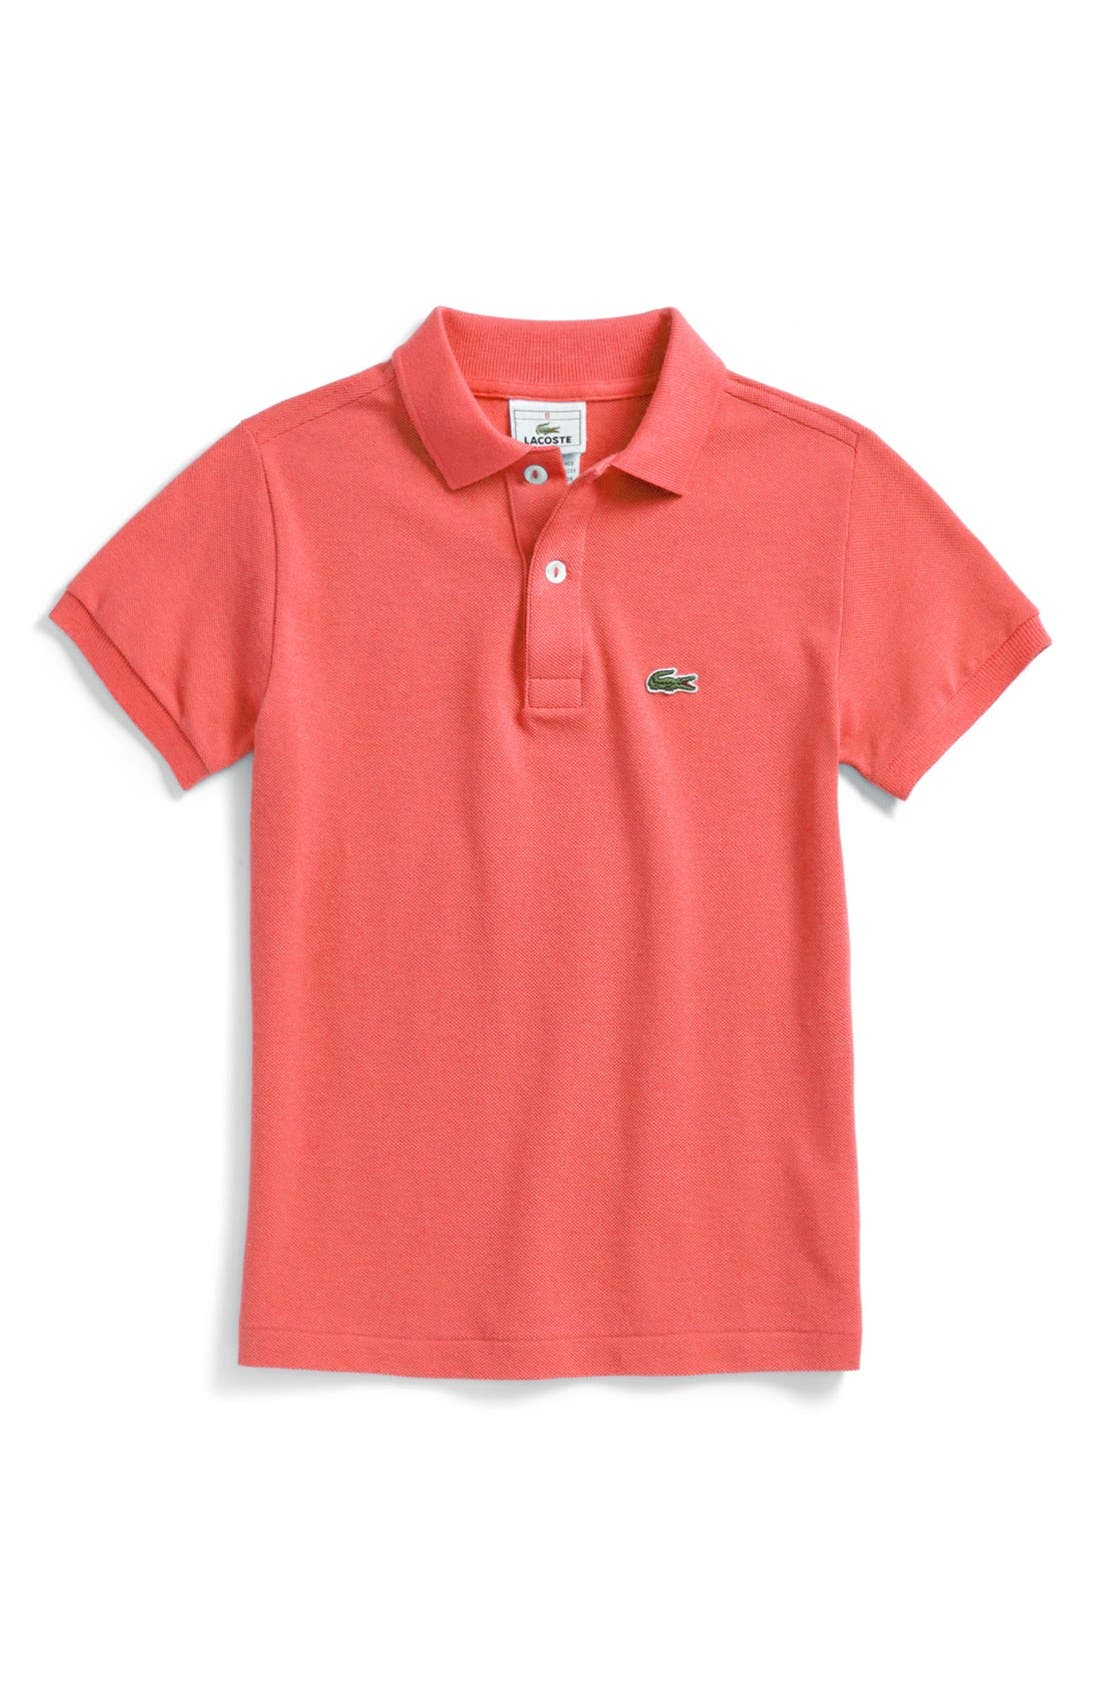 Main Image - Lacoste Short Sleeve Polo (Toddler)